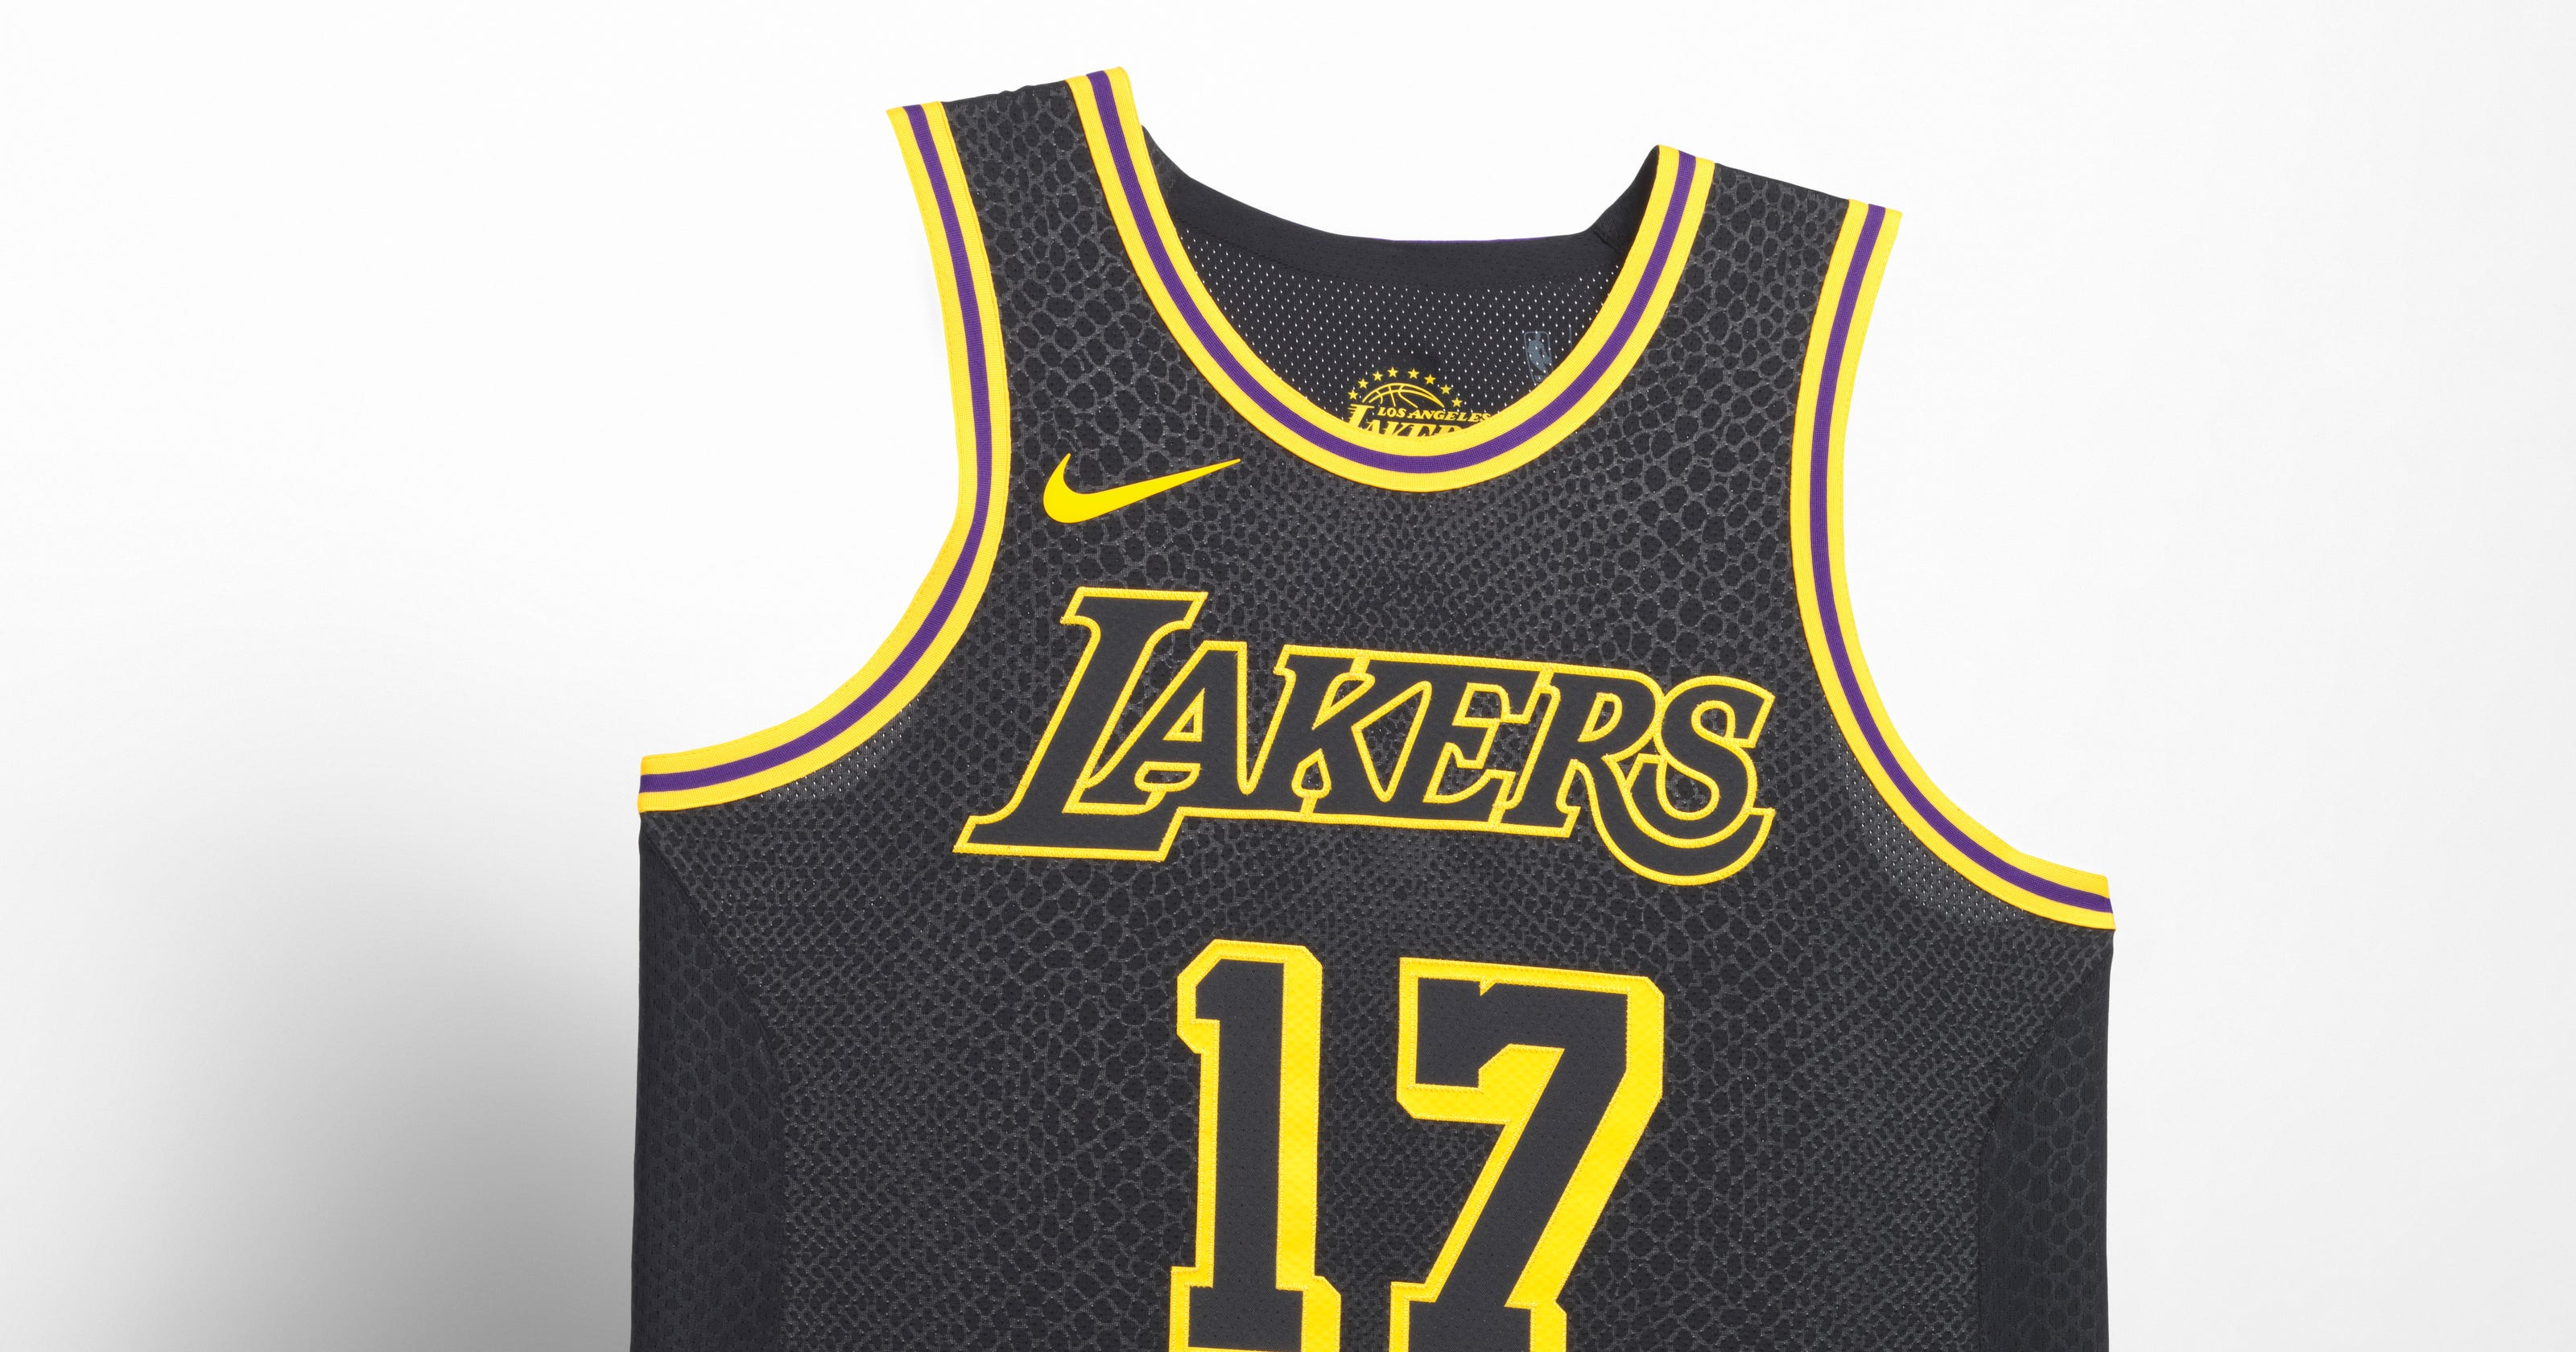 18a4a8c1210 Nike NBA City Edition uniforms: The story behind the design process